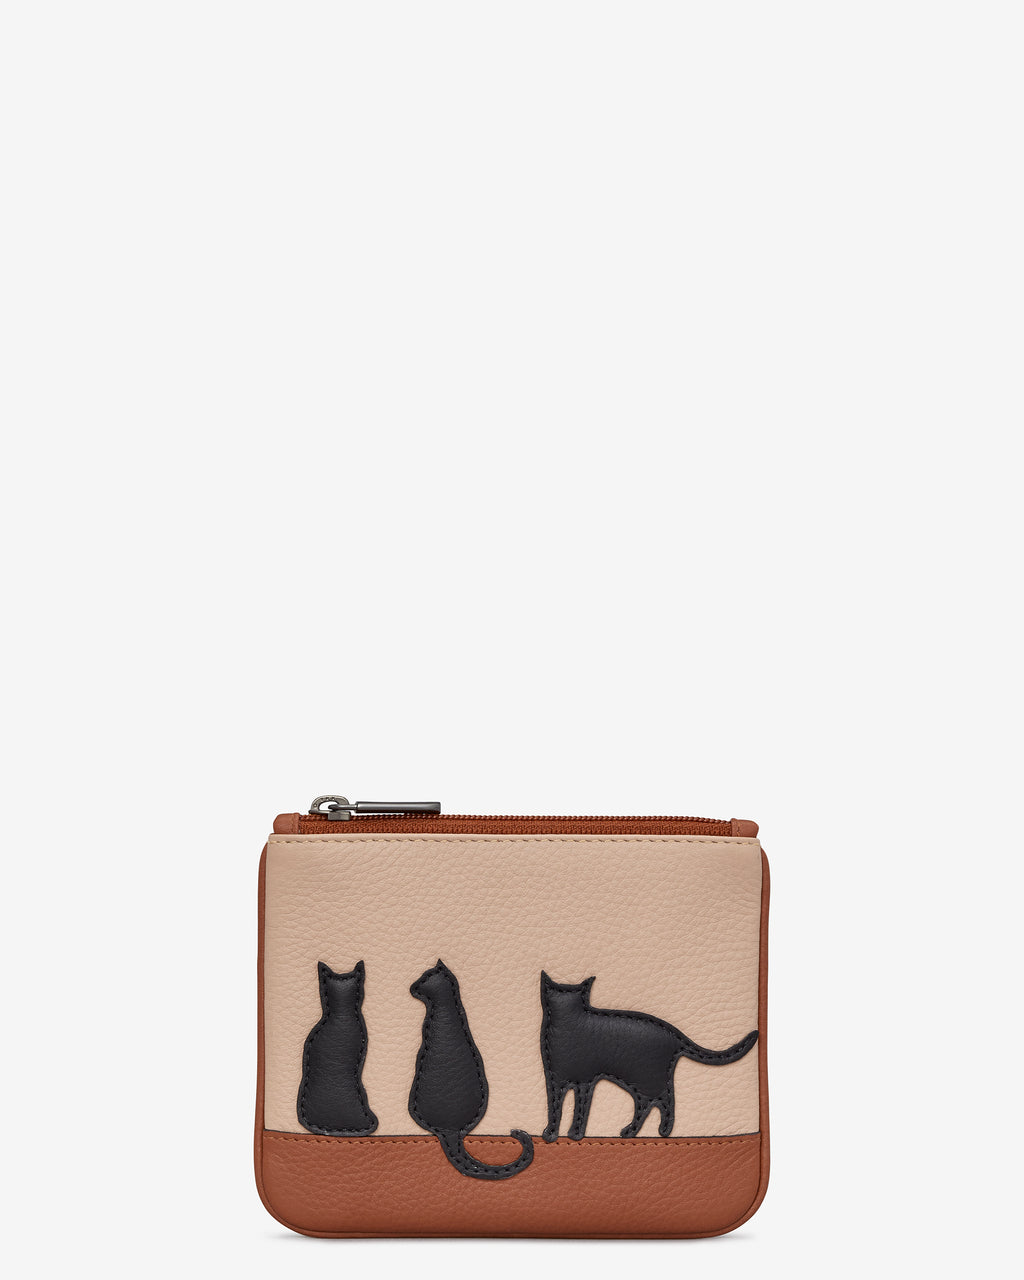 Clowder of Cats Zip Top Leather Purse